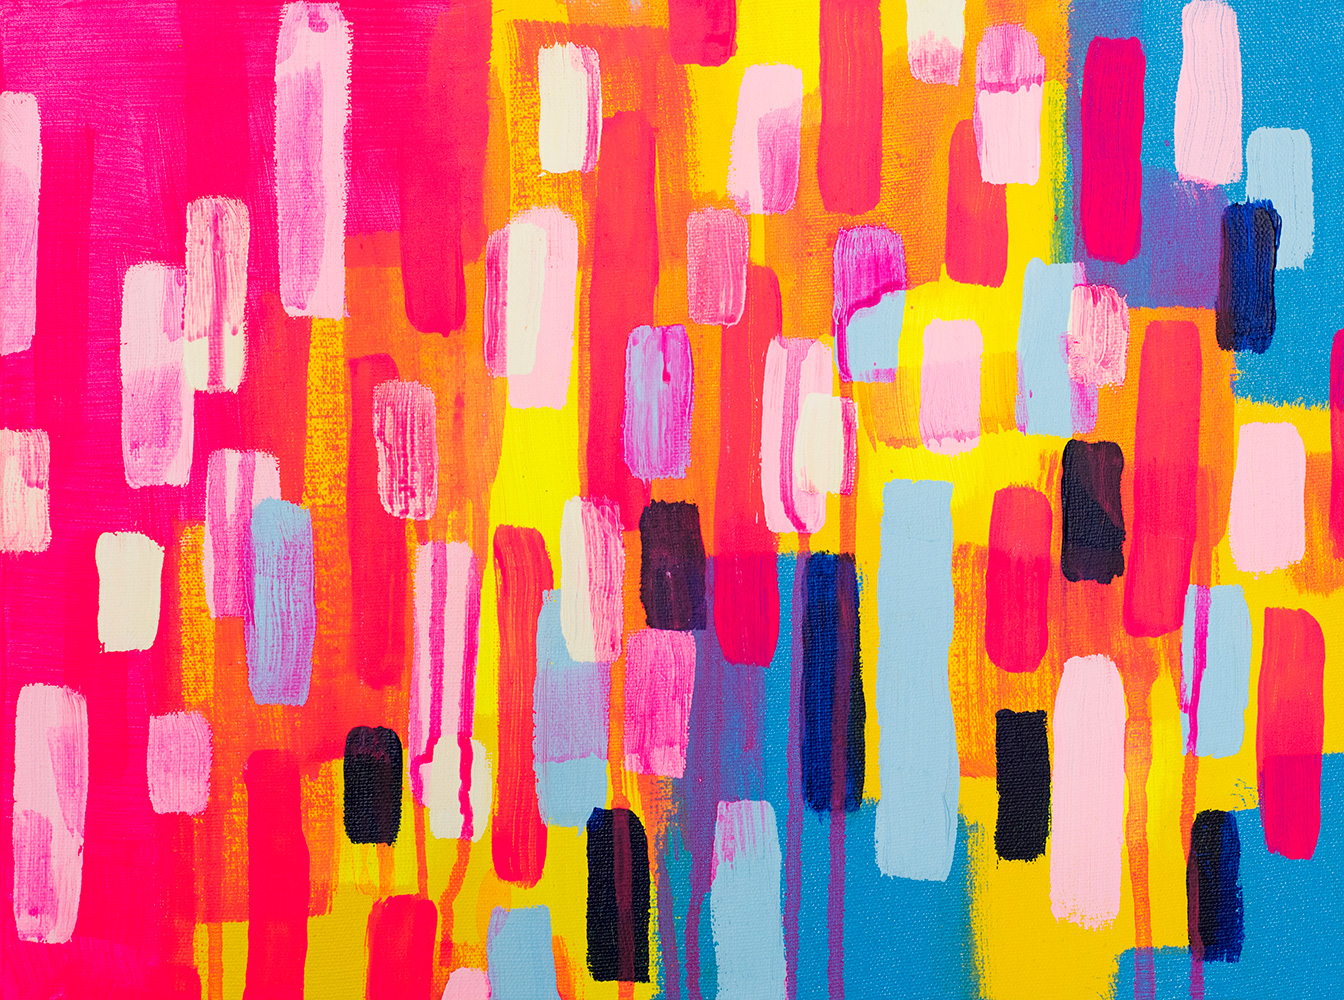 Neon Cities, 151025 / acrylics on canvas / 40x30 cm / available 245 €